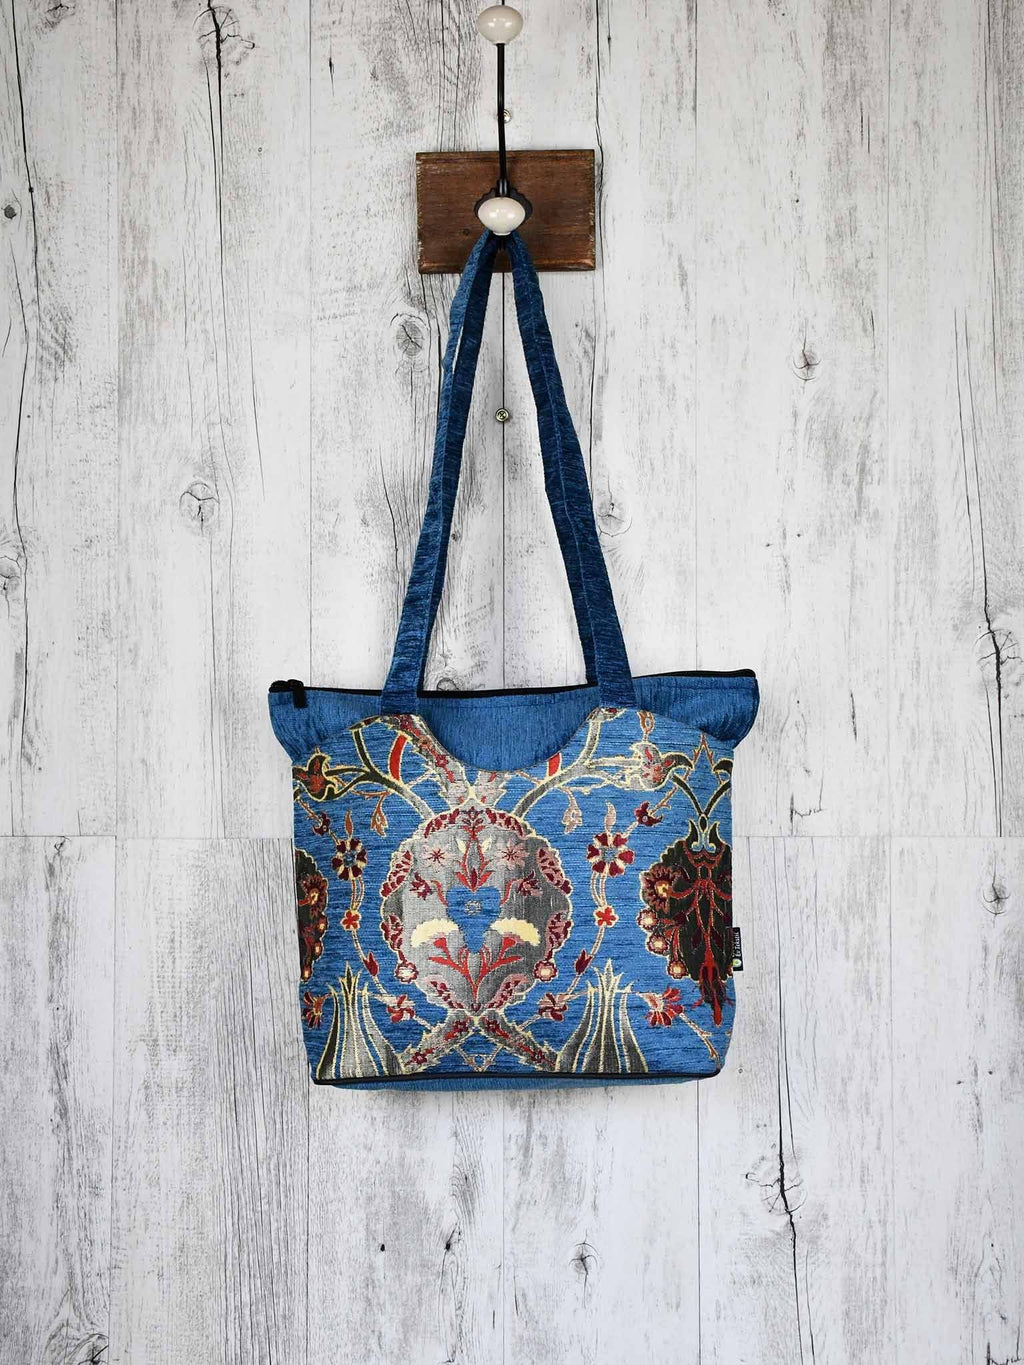 Turkish Handbag Tote Flower Light Blue Textile Sydney Grand Bazaar